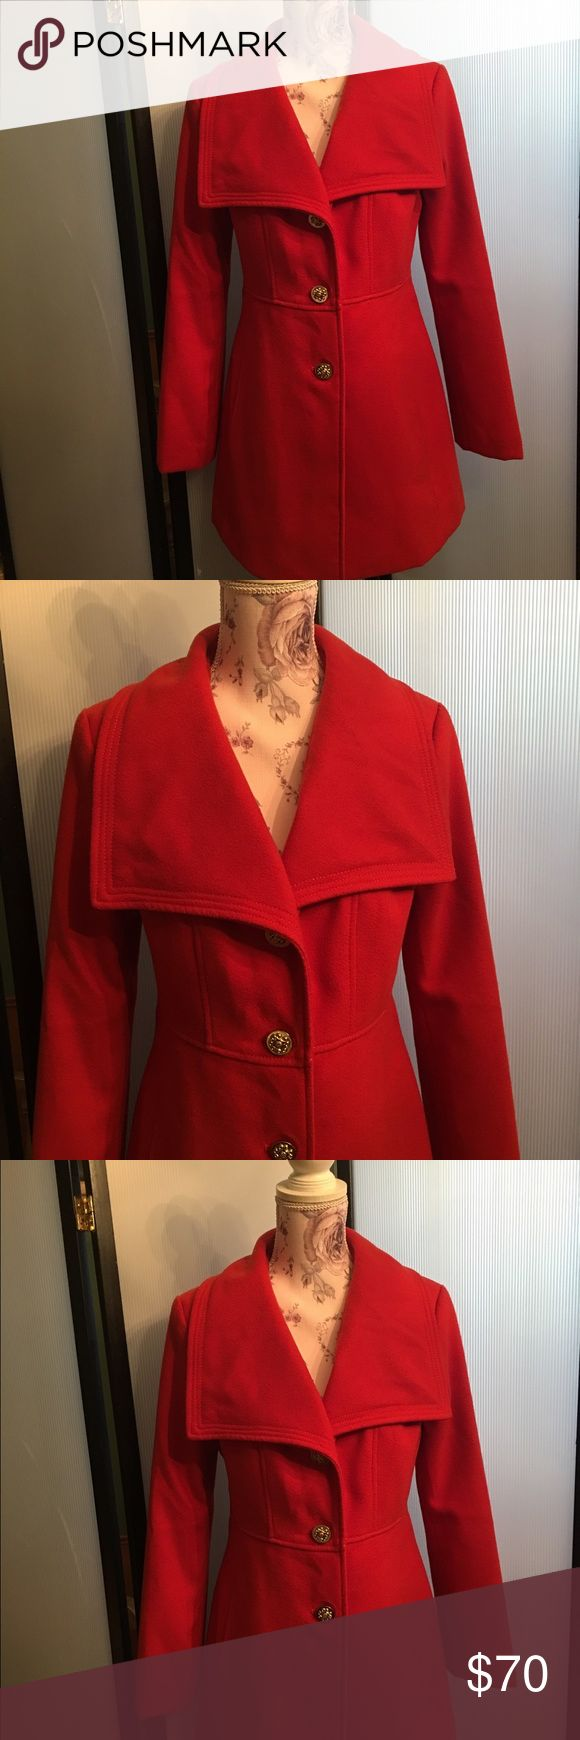 Jessica Simpson Coat NWOT Red Jessica Simpson Shawl Collar Pea Coat new without tag, does come with extra button attached to tag. Jessica Simpson Jackets & Coats Pea Coats